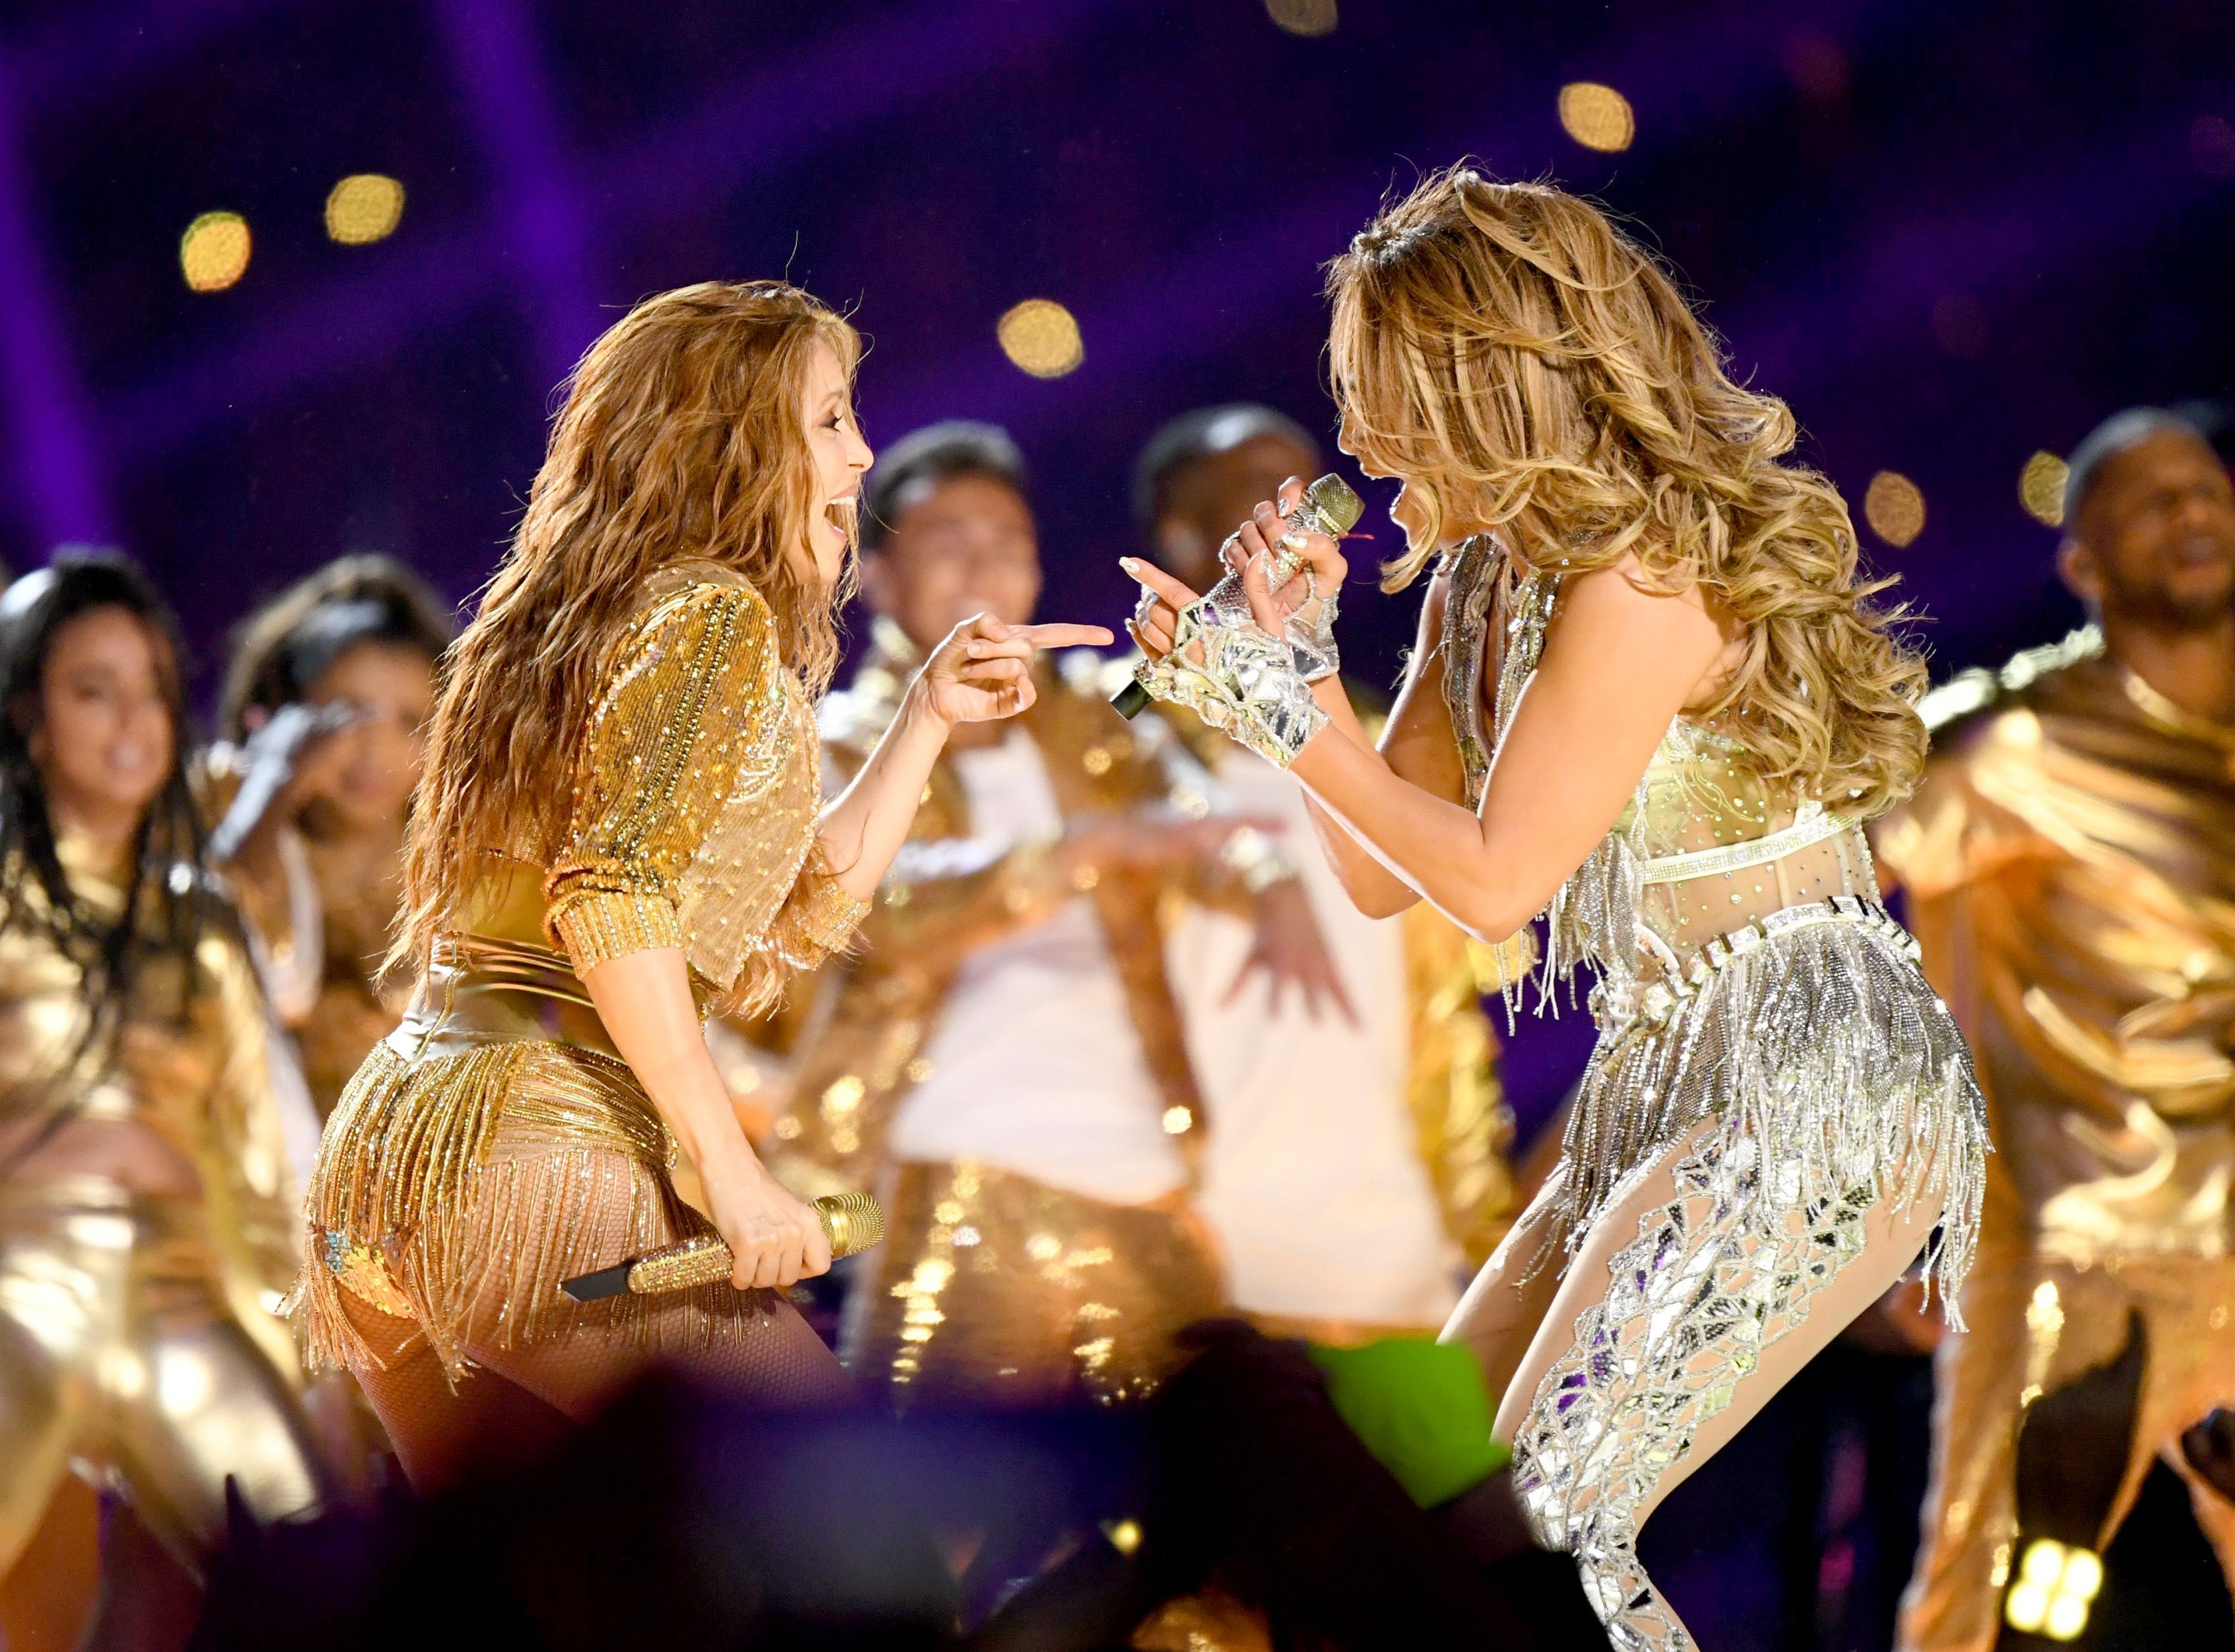 Shakira and Jennifer Lopez perform onstage during the Pepsi Super Bowl LIV Halftime Show at Hard Rock Stadium. (Photo by Kevin Winter/Getty Images)